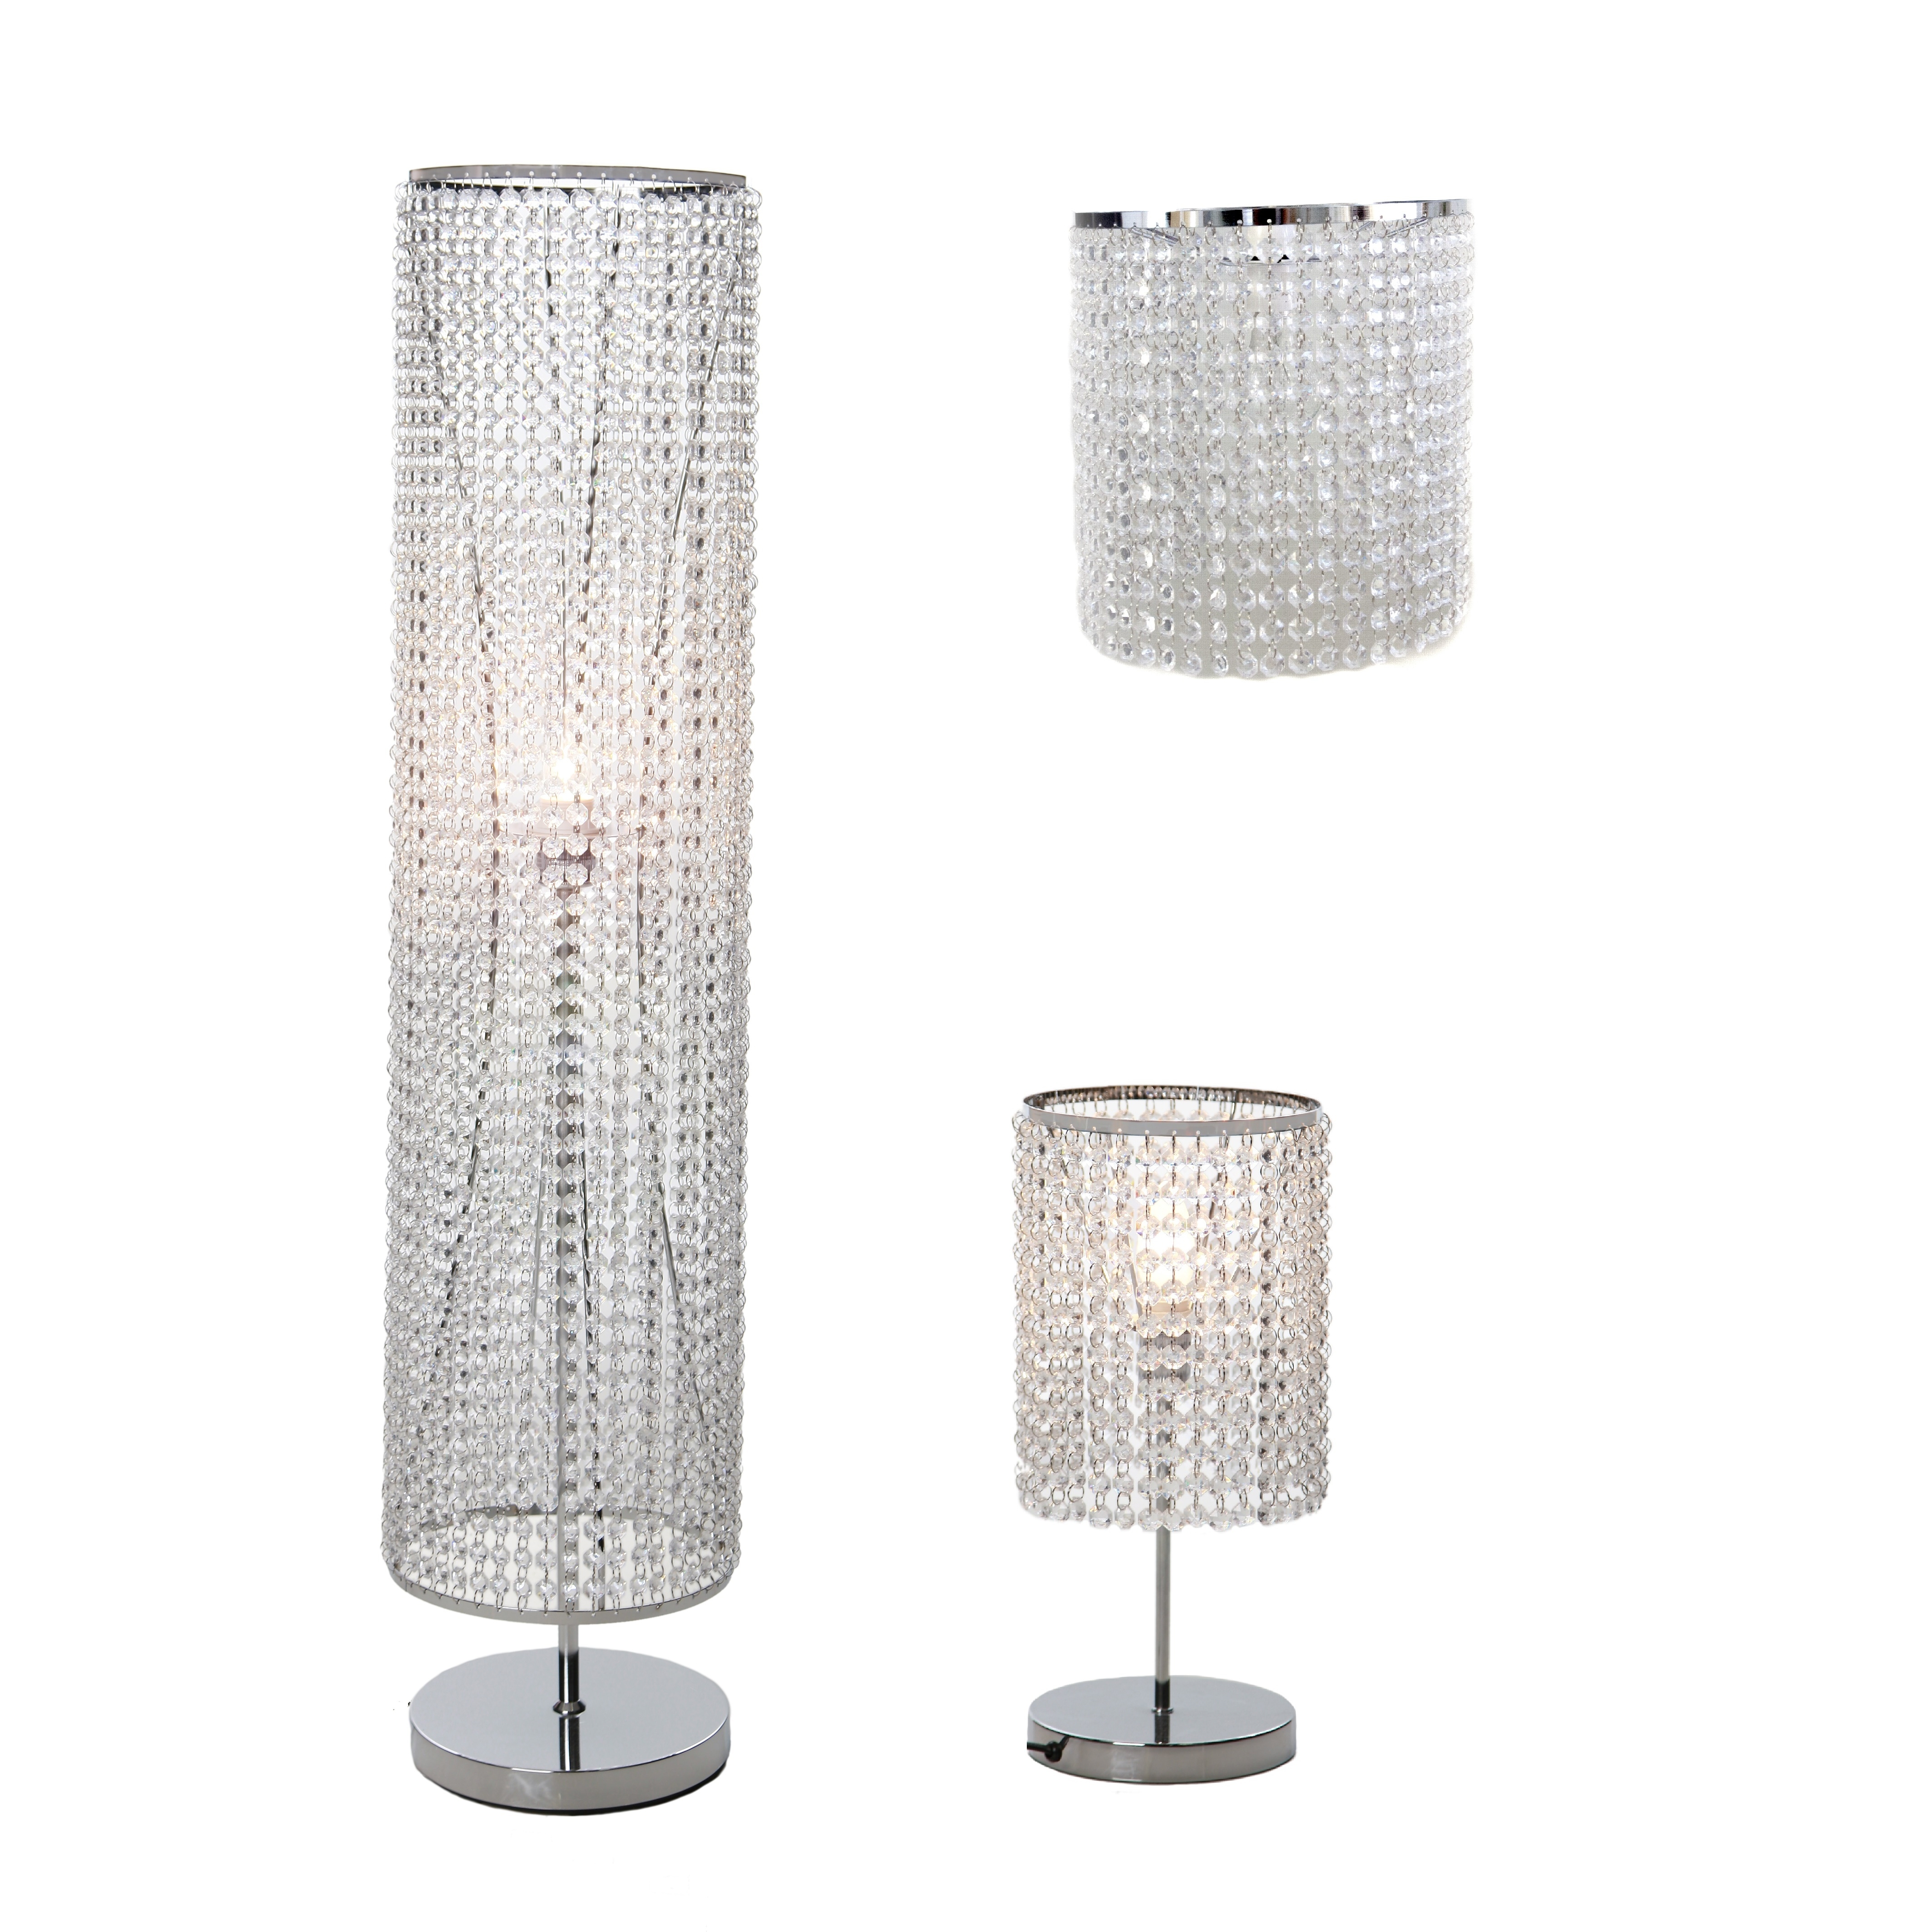 Lights Cheap Chandelier Floor Lamp Chrome Arc Lamp Crystal Throughout Chandelier Standing Lamps (Image 15 of 25)